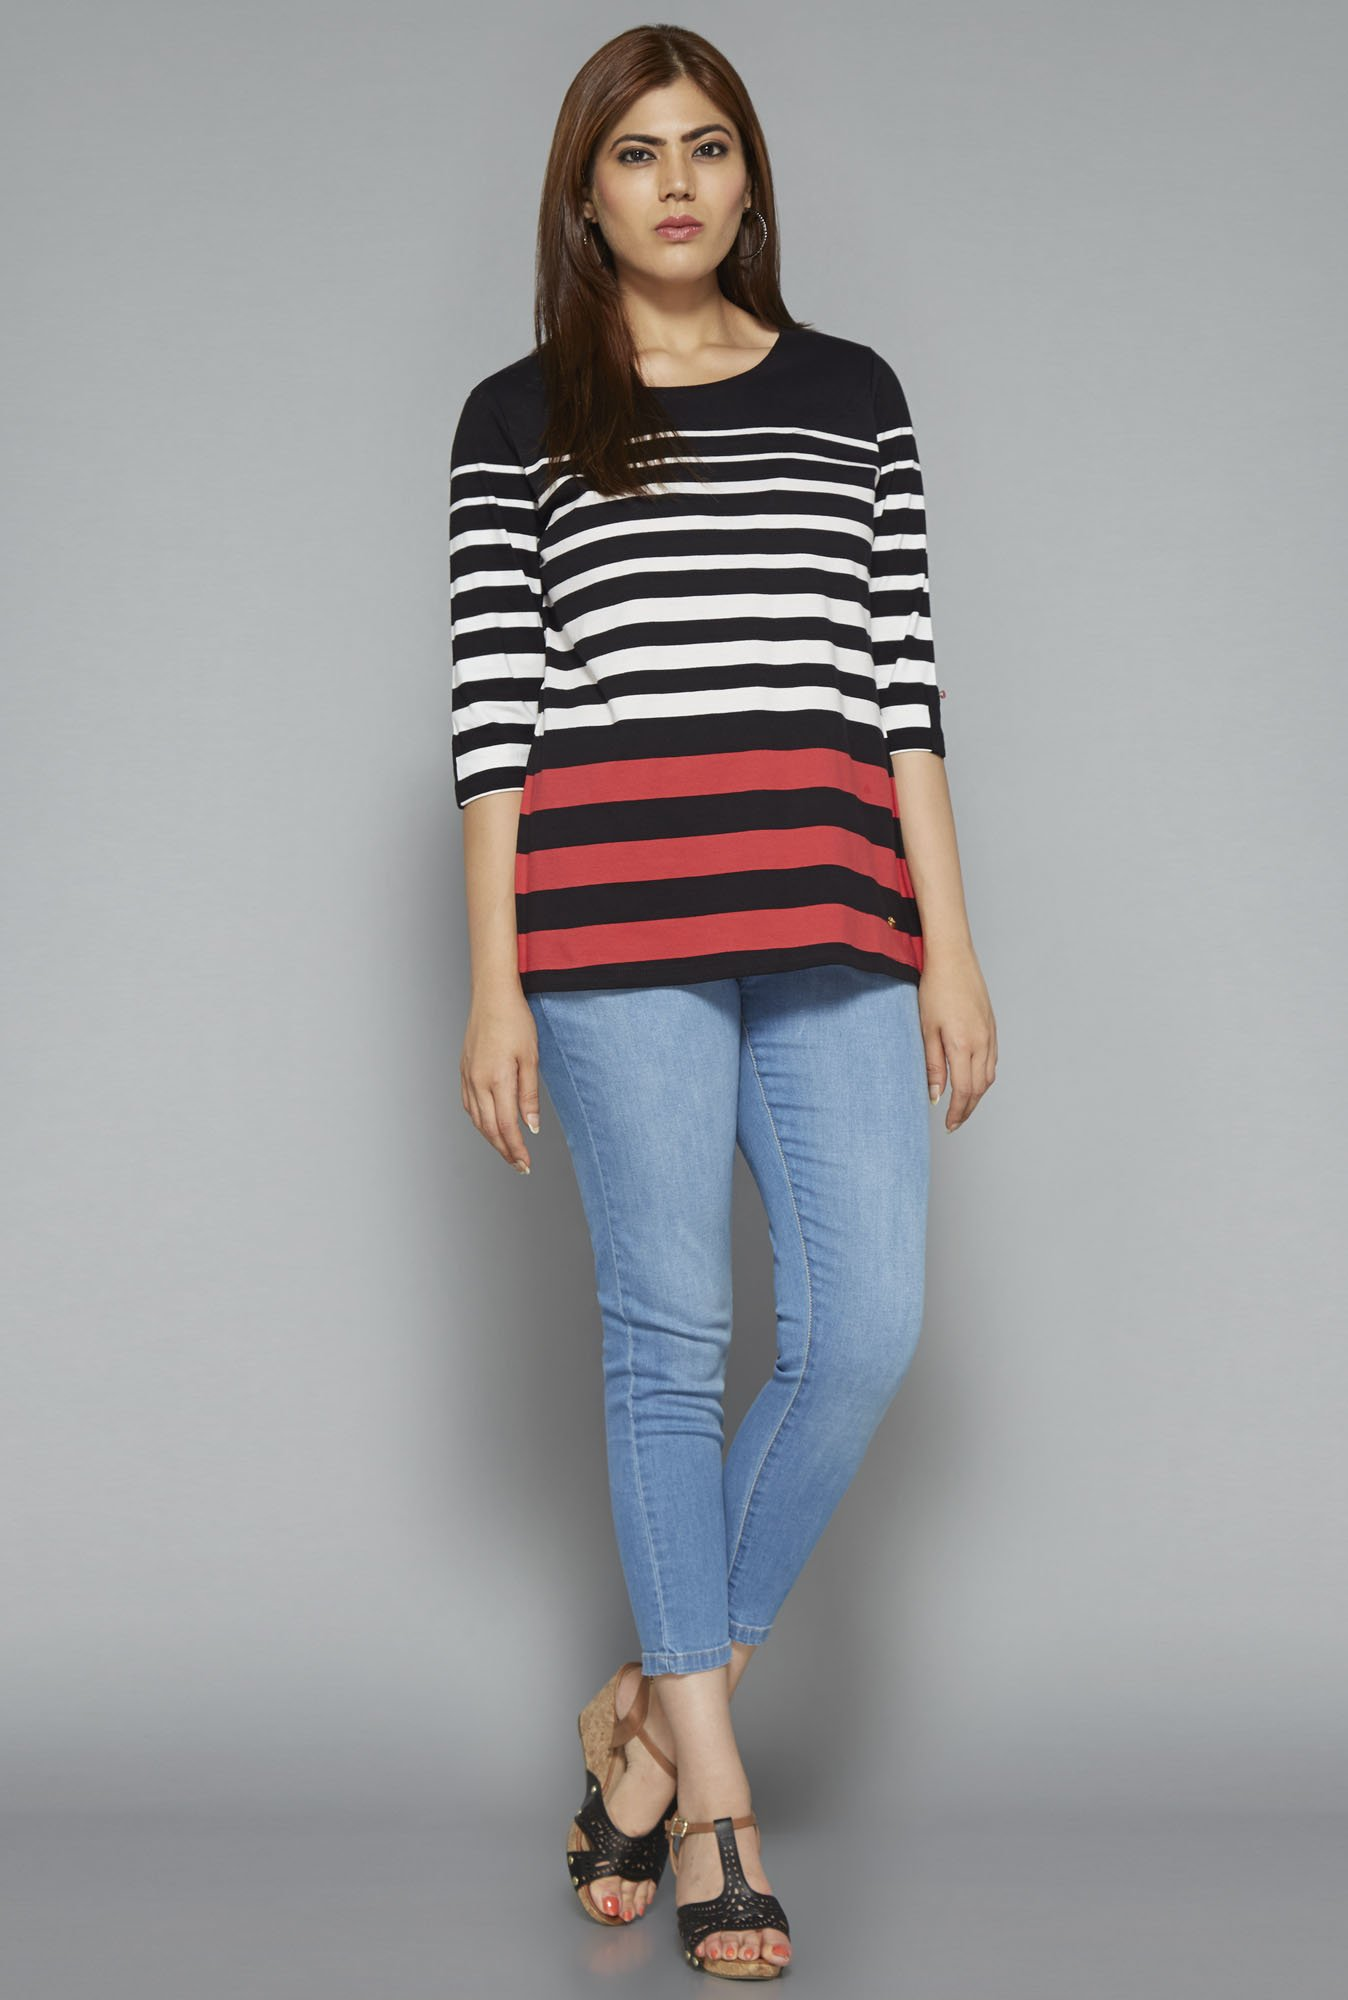 Gia by Westside Black Striped Top